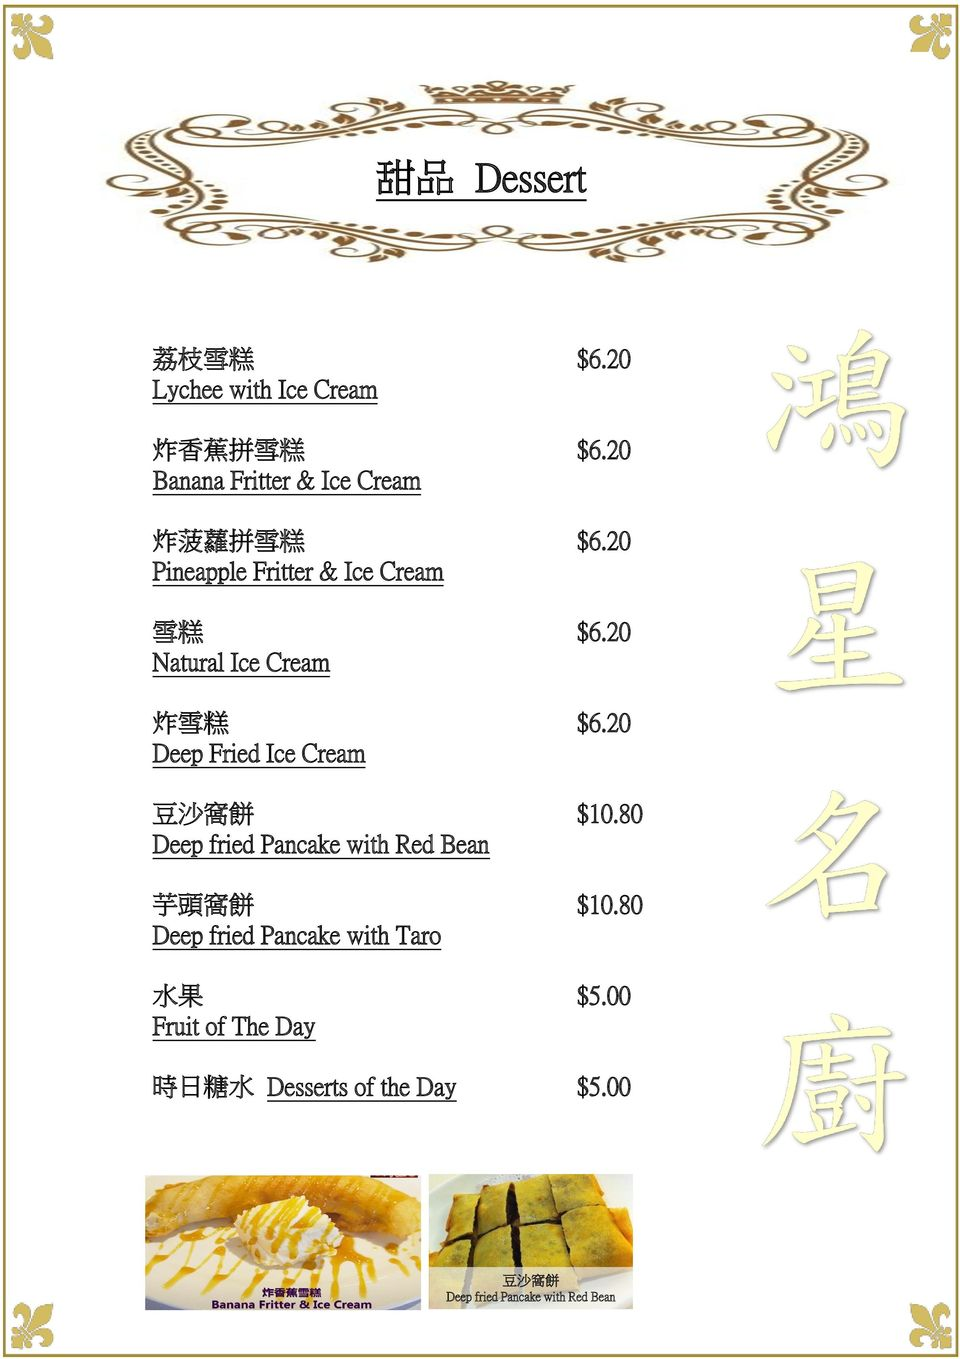 20 Natural Ice Cream 炸 雪 糕 $6.20 Deep Fried Ice Cream 豆 沙 窩 餅 $10.